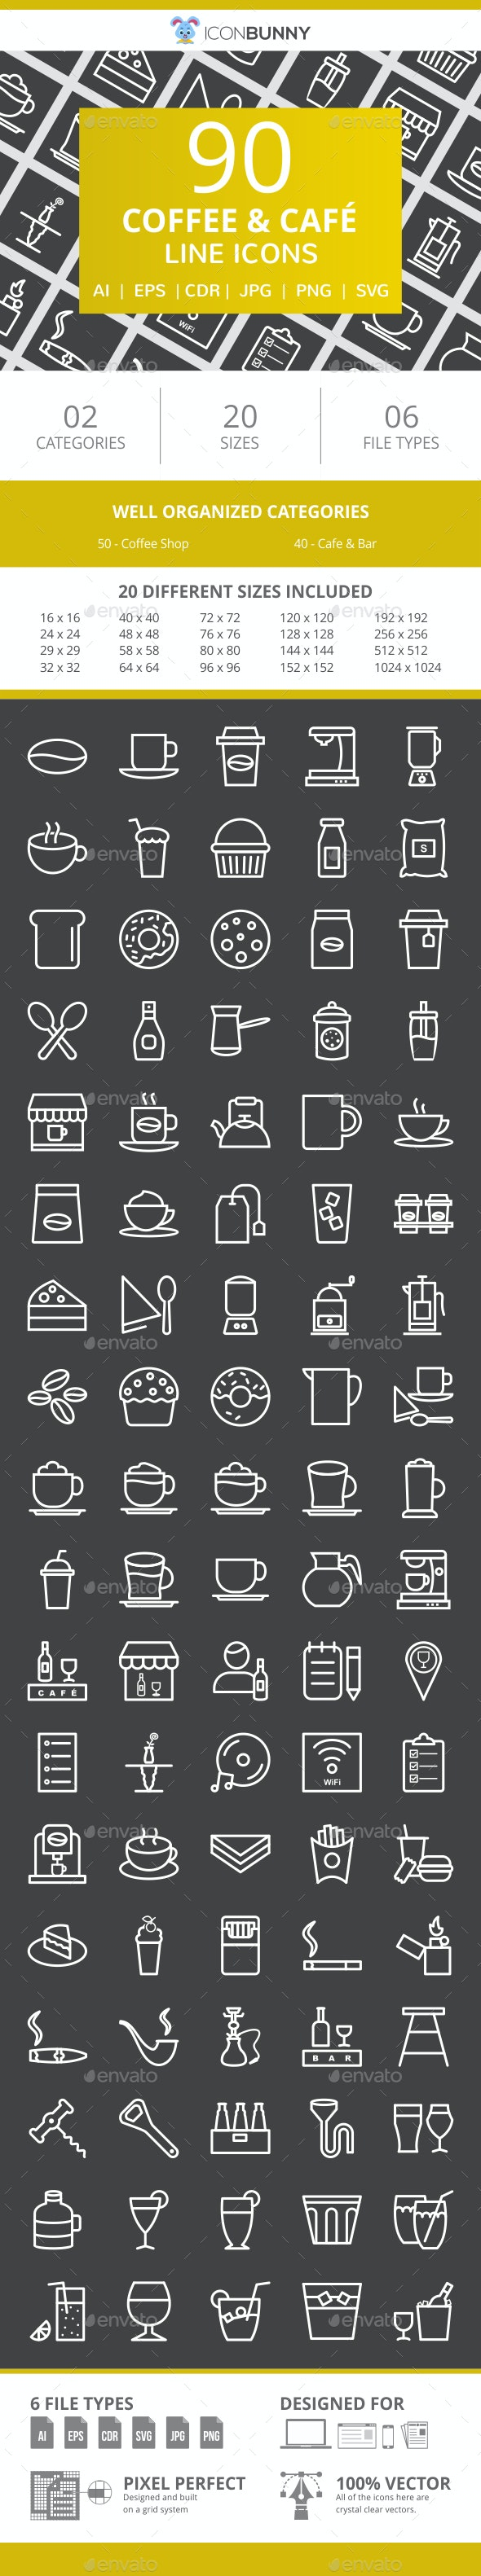 90 Coffee & Cafe Line Inverted Icons - Icons